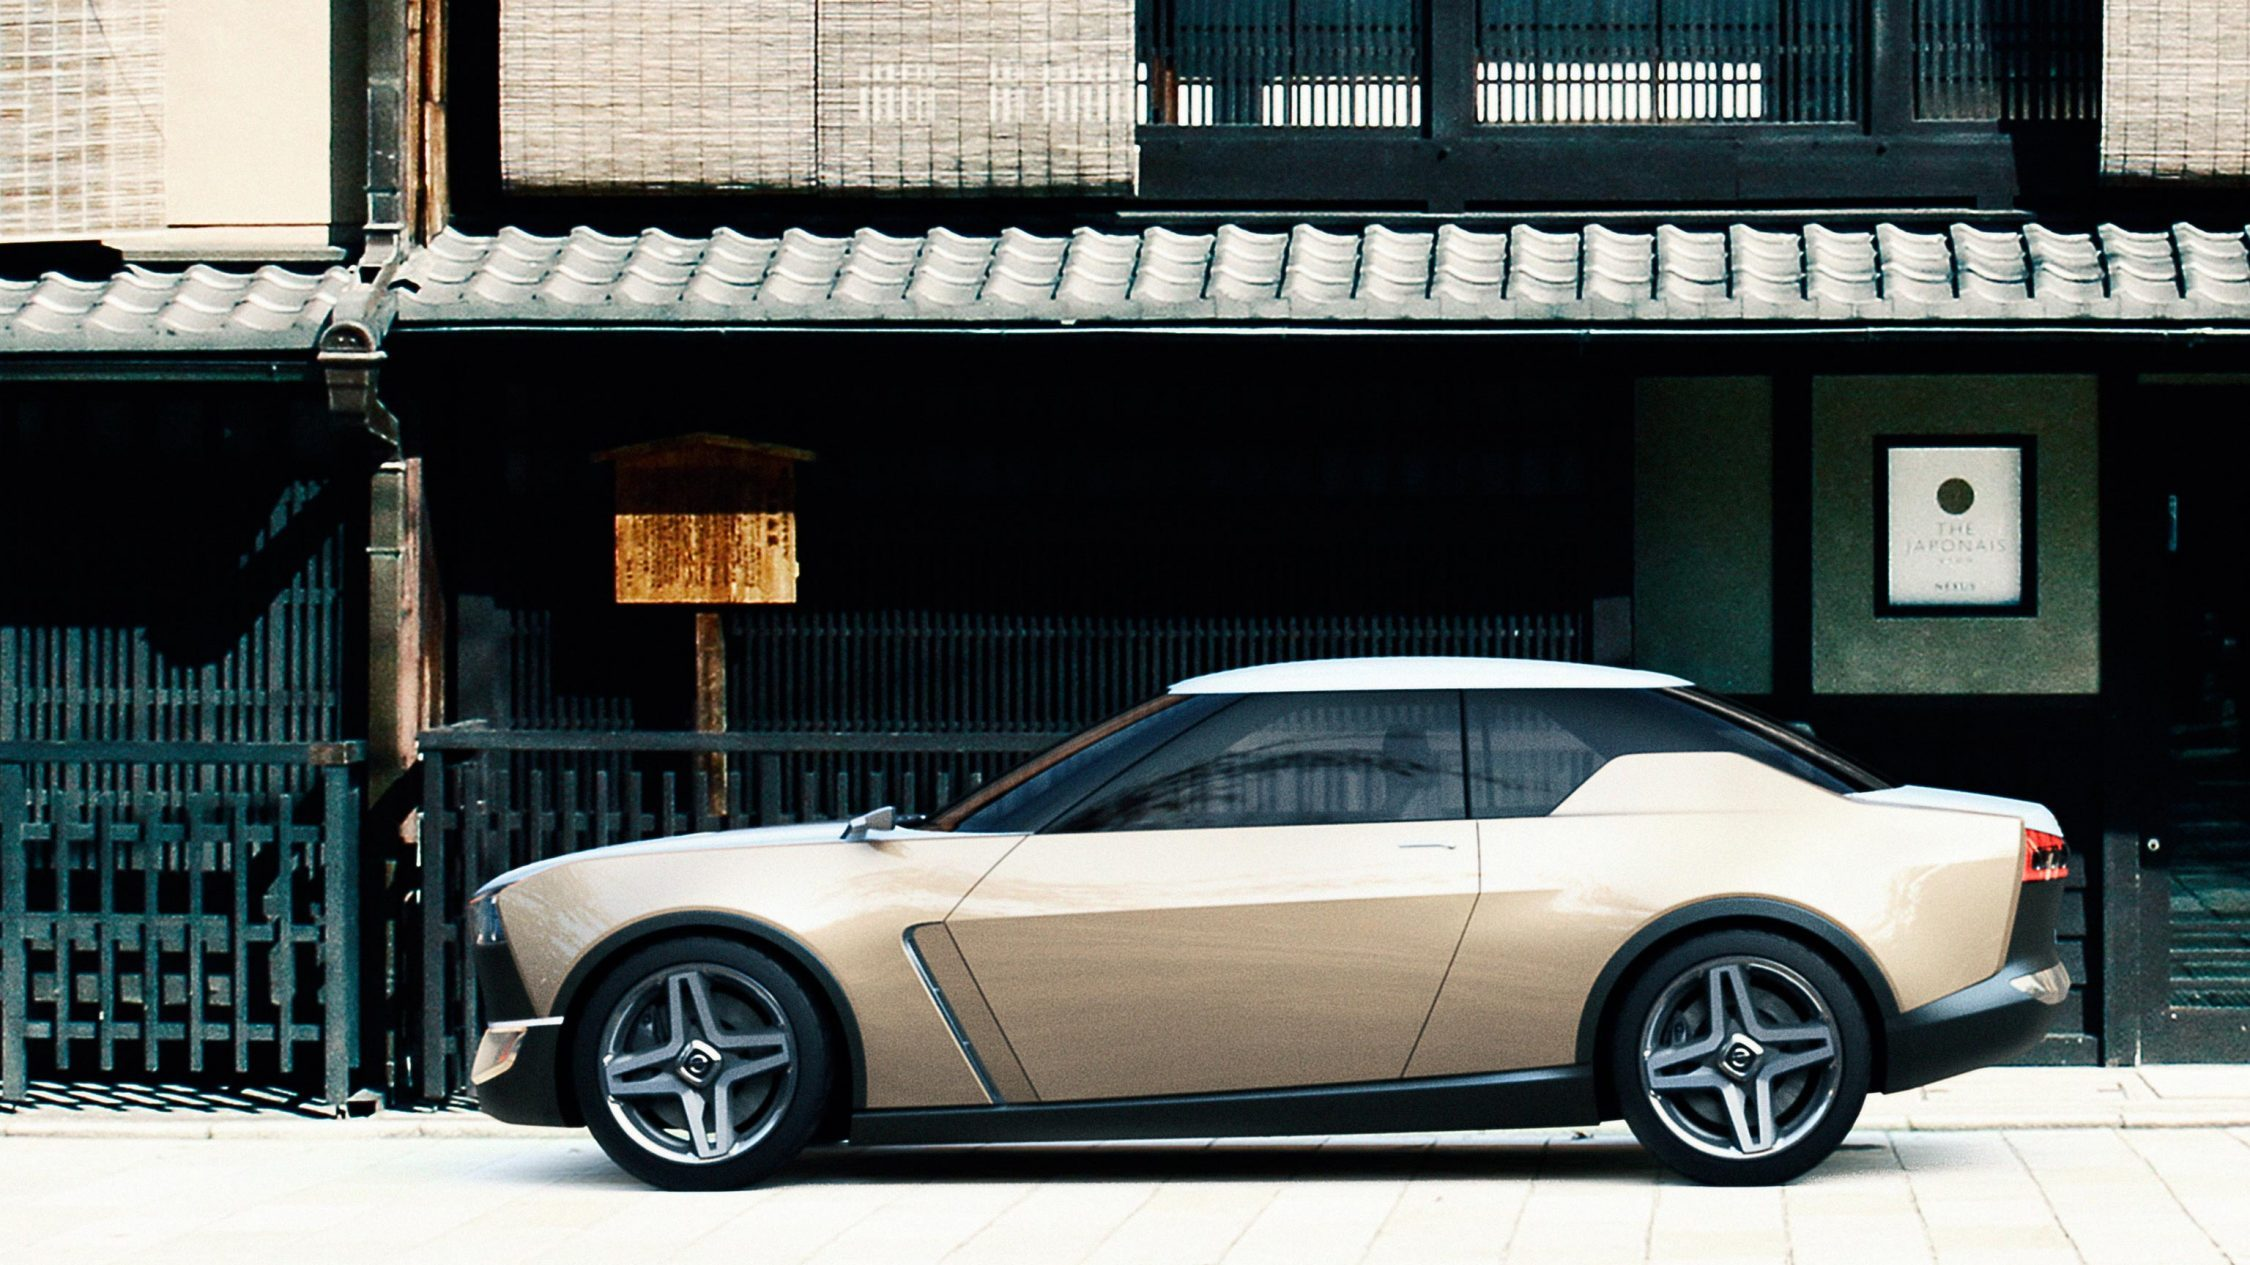 Nissan IDX Freeflow Concept. Gallery profile city storefront.